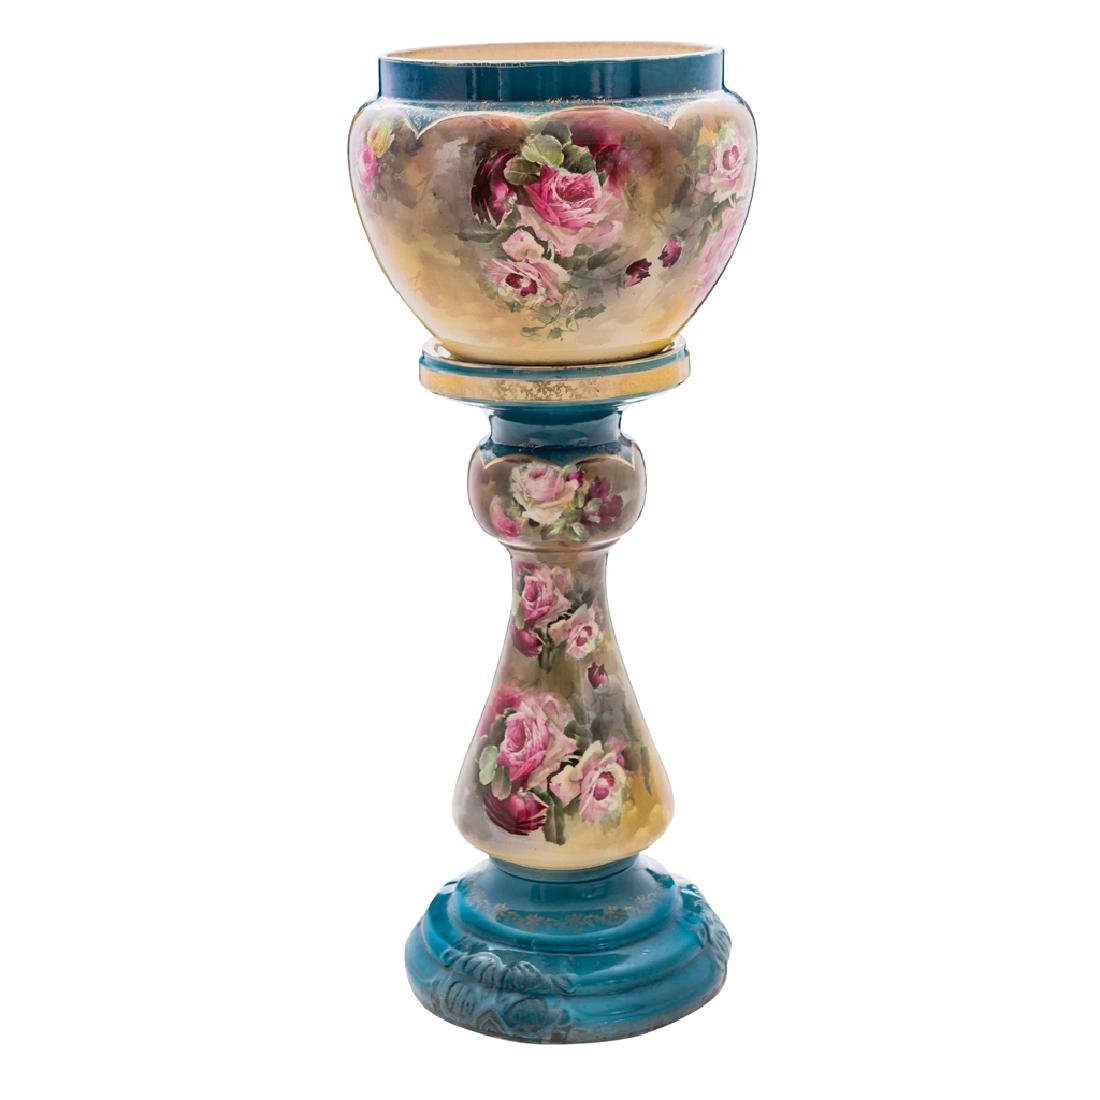 A JARDINIERE ON STAND. FRANCE, CA. 1900. Porcelain,